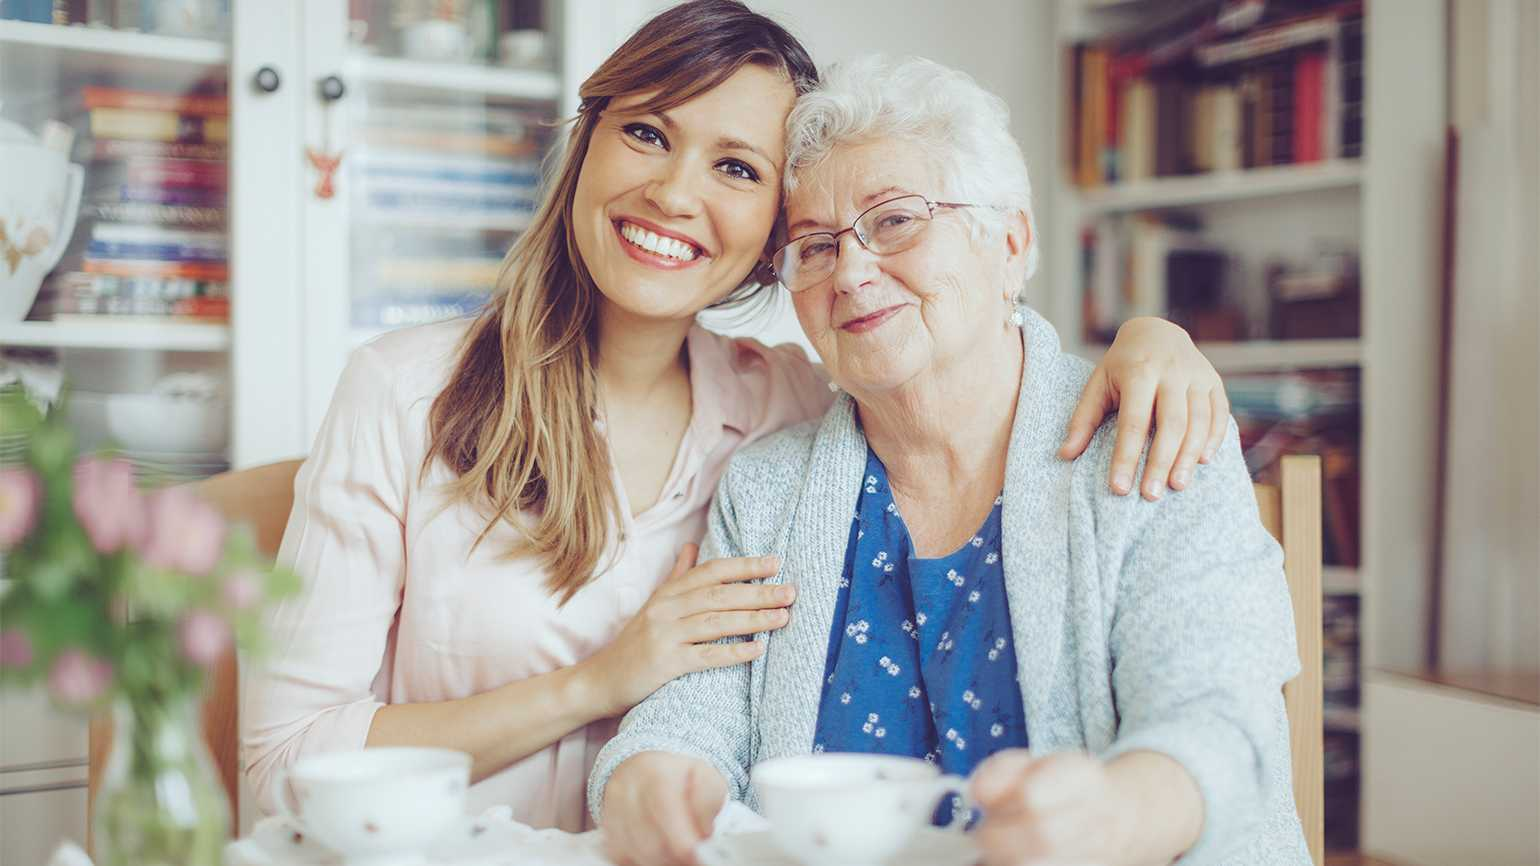 7 Keys to Caring for a Loved One with Dementia